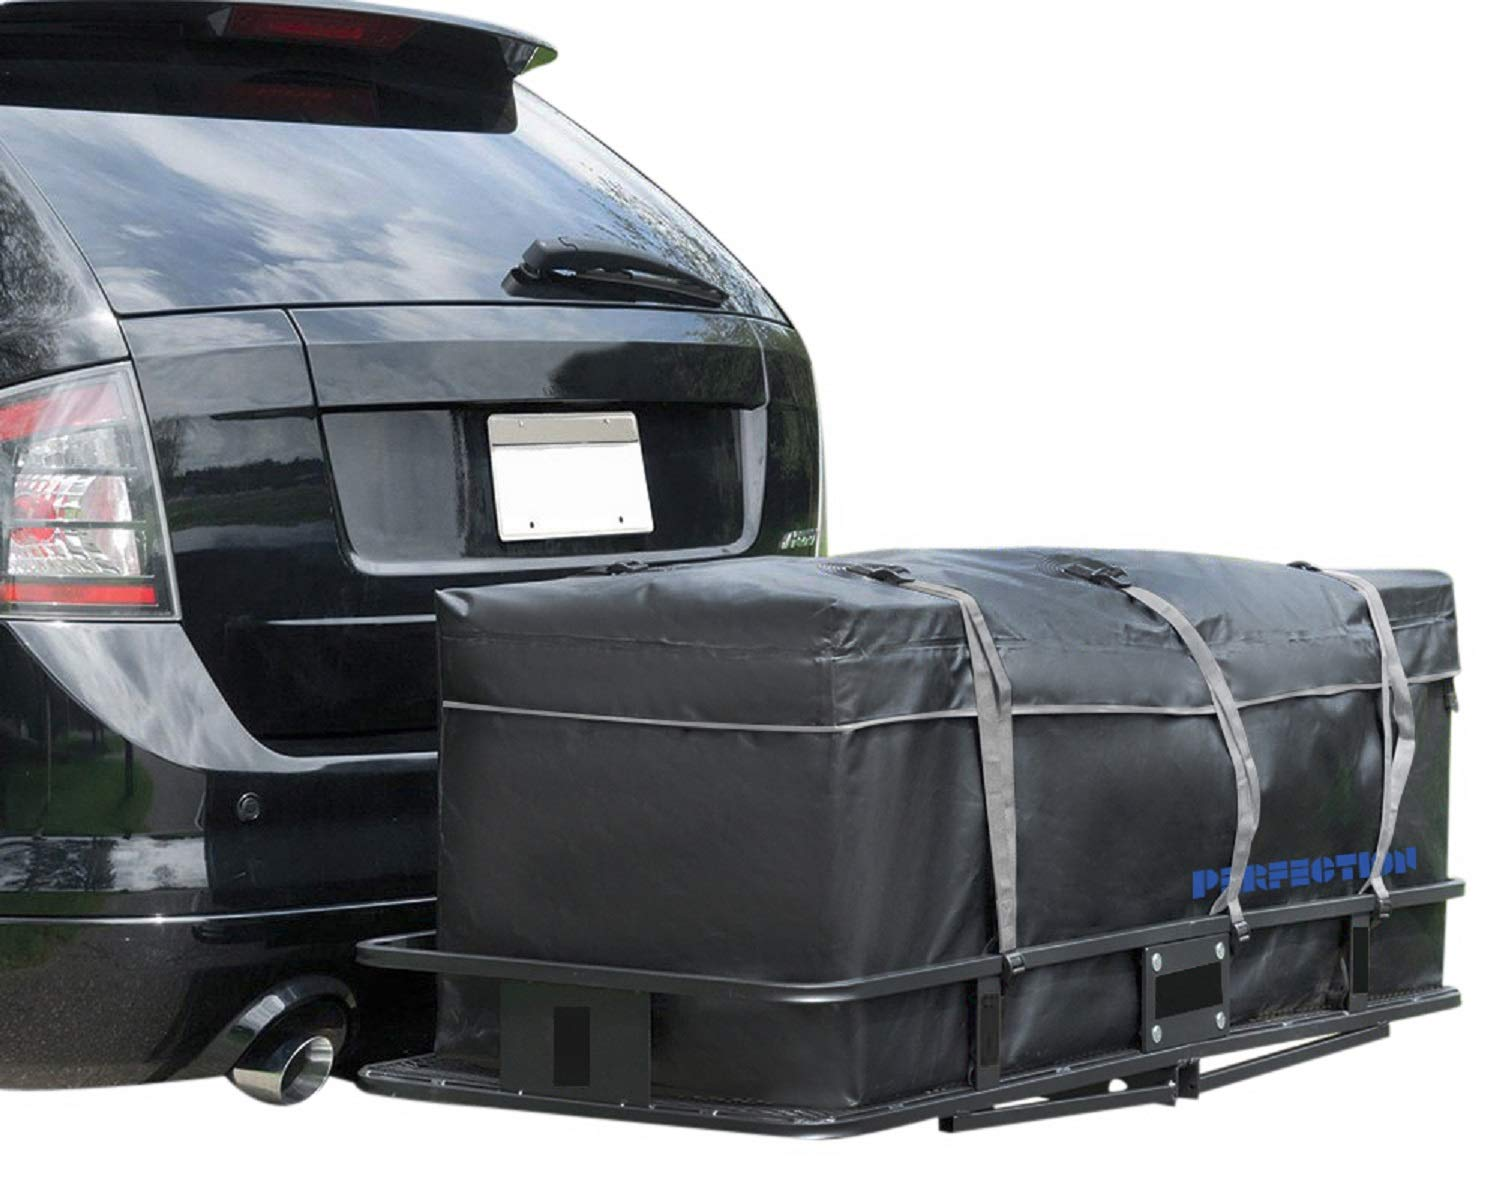 100/% Waterproof Large Hitch Tray Cargo Carrier Bag 59 x 24 x 24 Perfection Updated Hitch Bag Large Bonus Storage Bag Included 20 Cu Ft